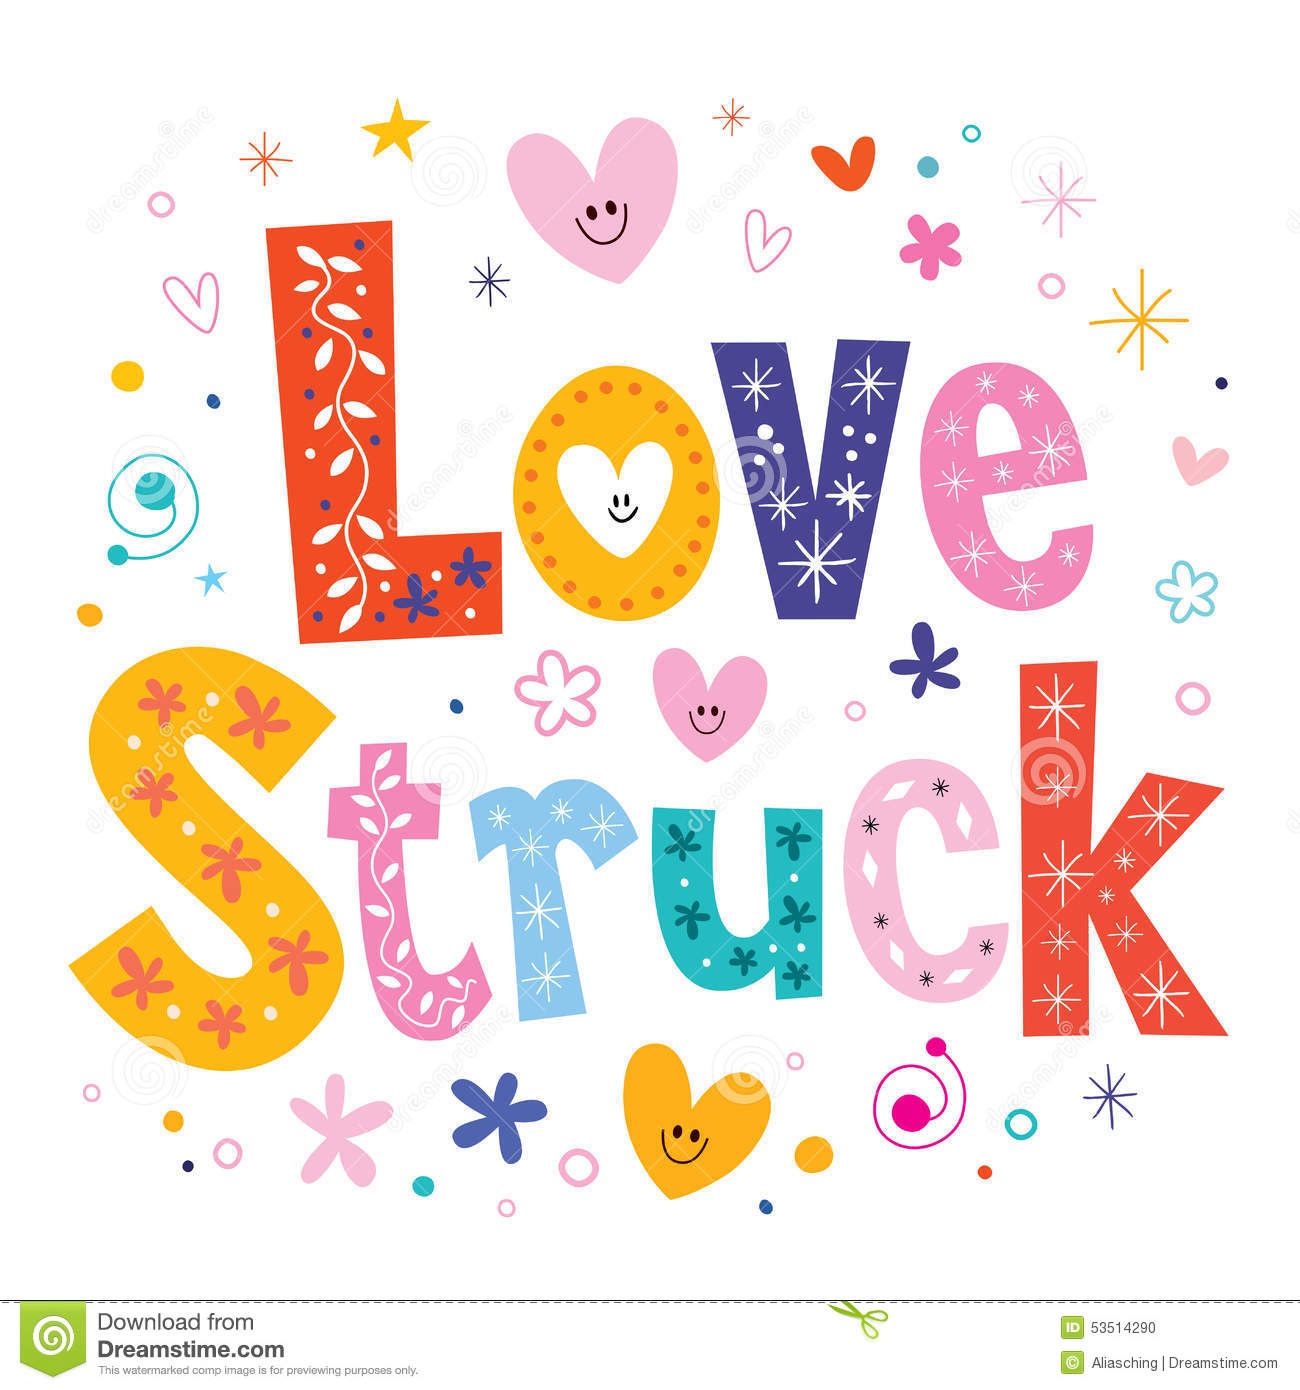 What kind of word is love-struck?